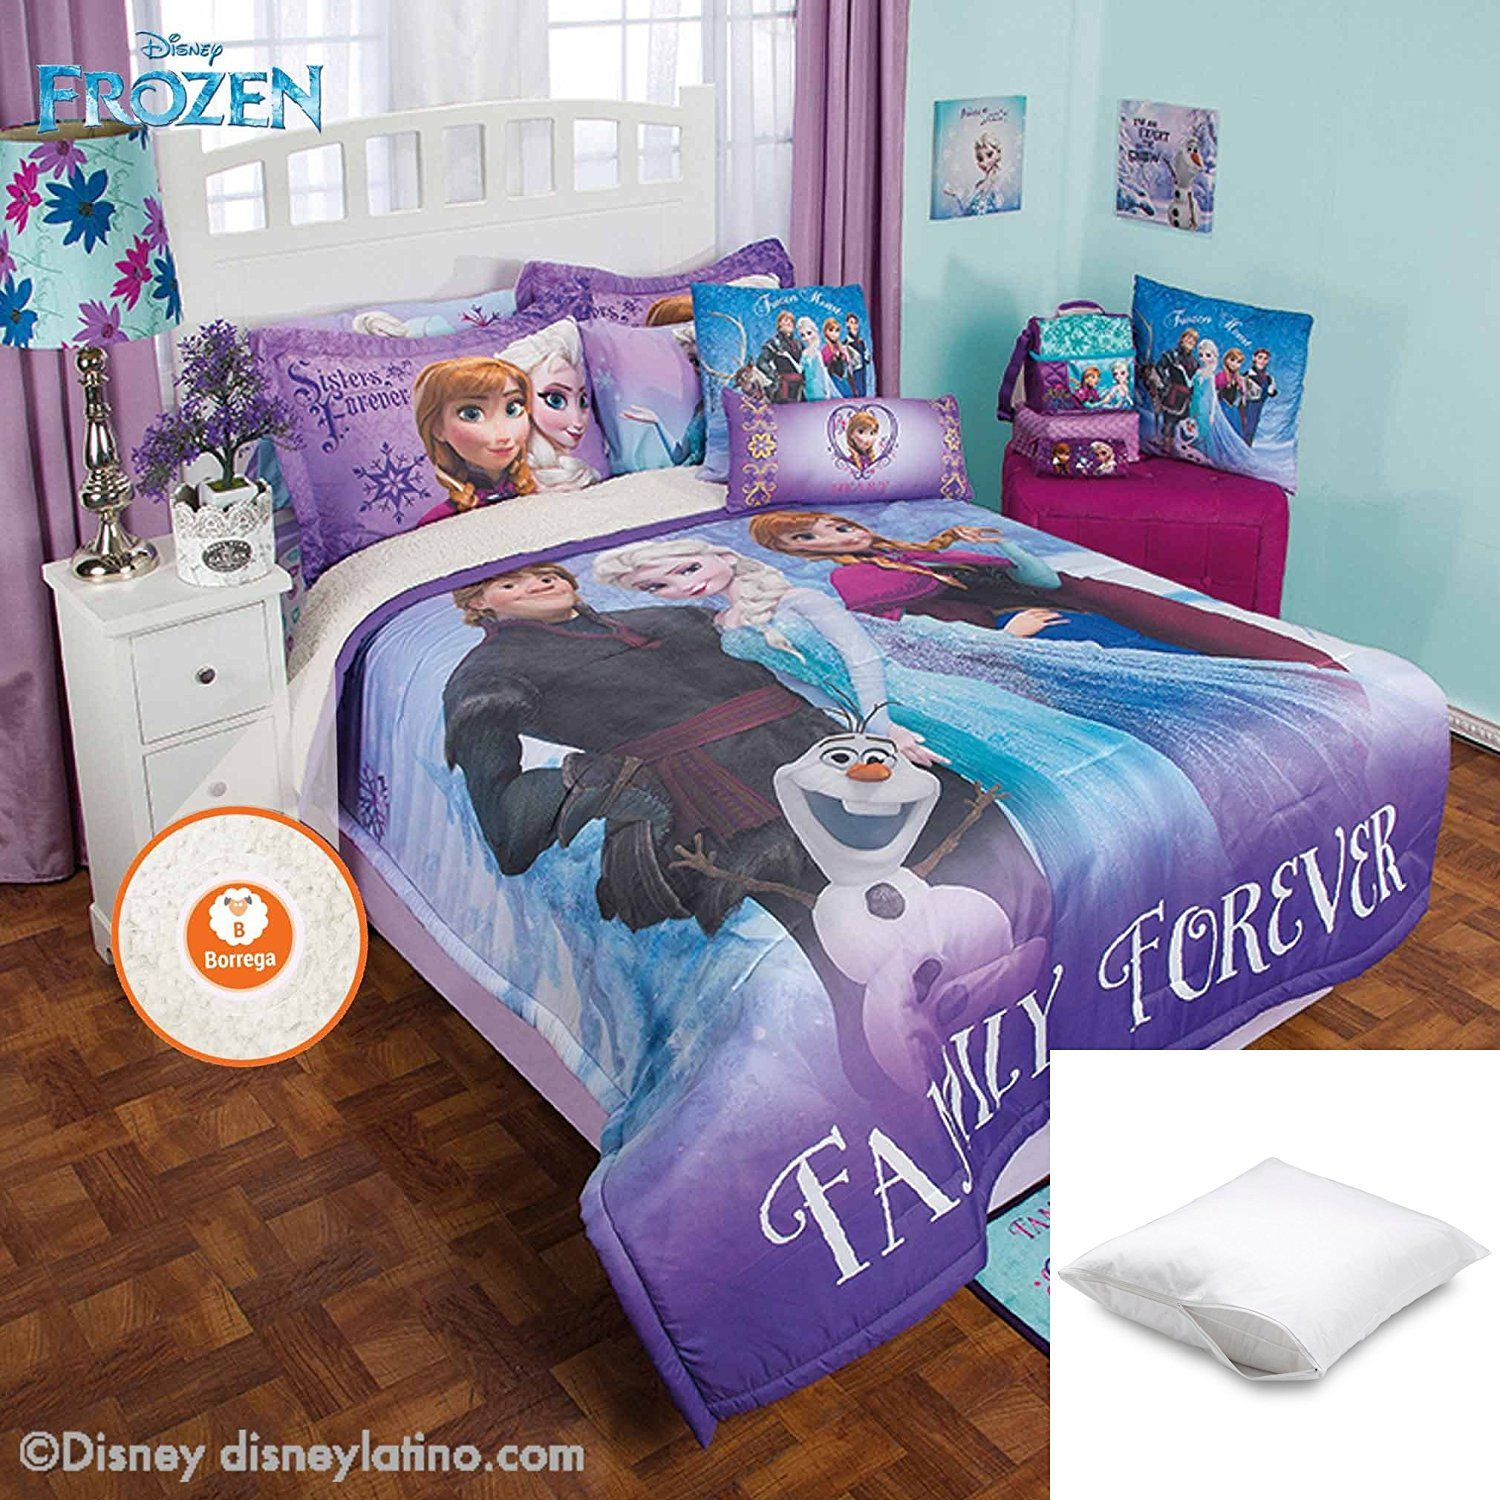 king images duvet in for a will abituniquebou pinterest queen print cobertoresblankets fit size and bedding comforter blanket fleece elaborated on best blankets deluxe sale cobertores islandia polyester animal fuzzy mattress